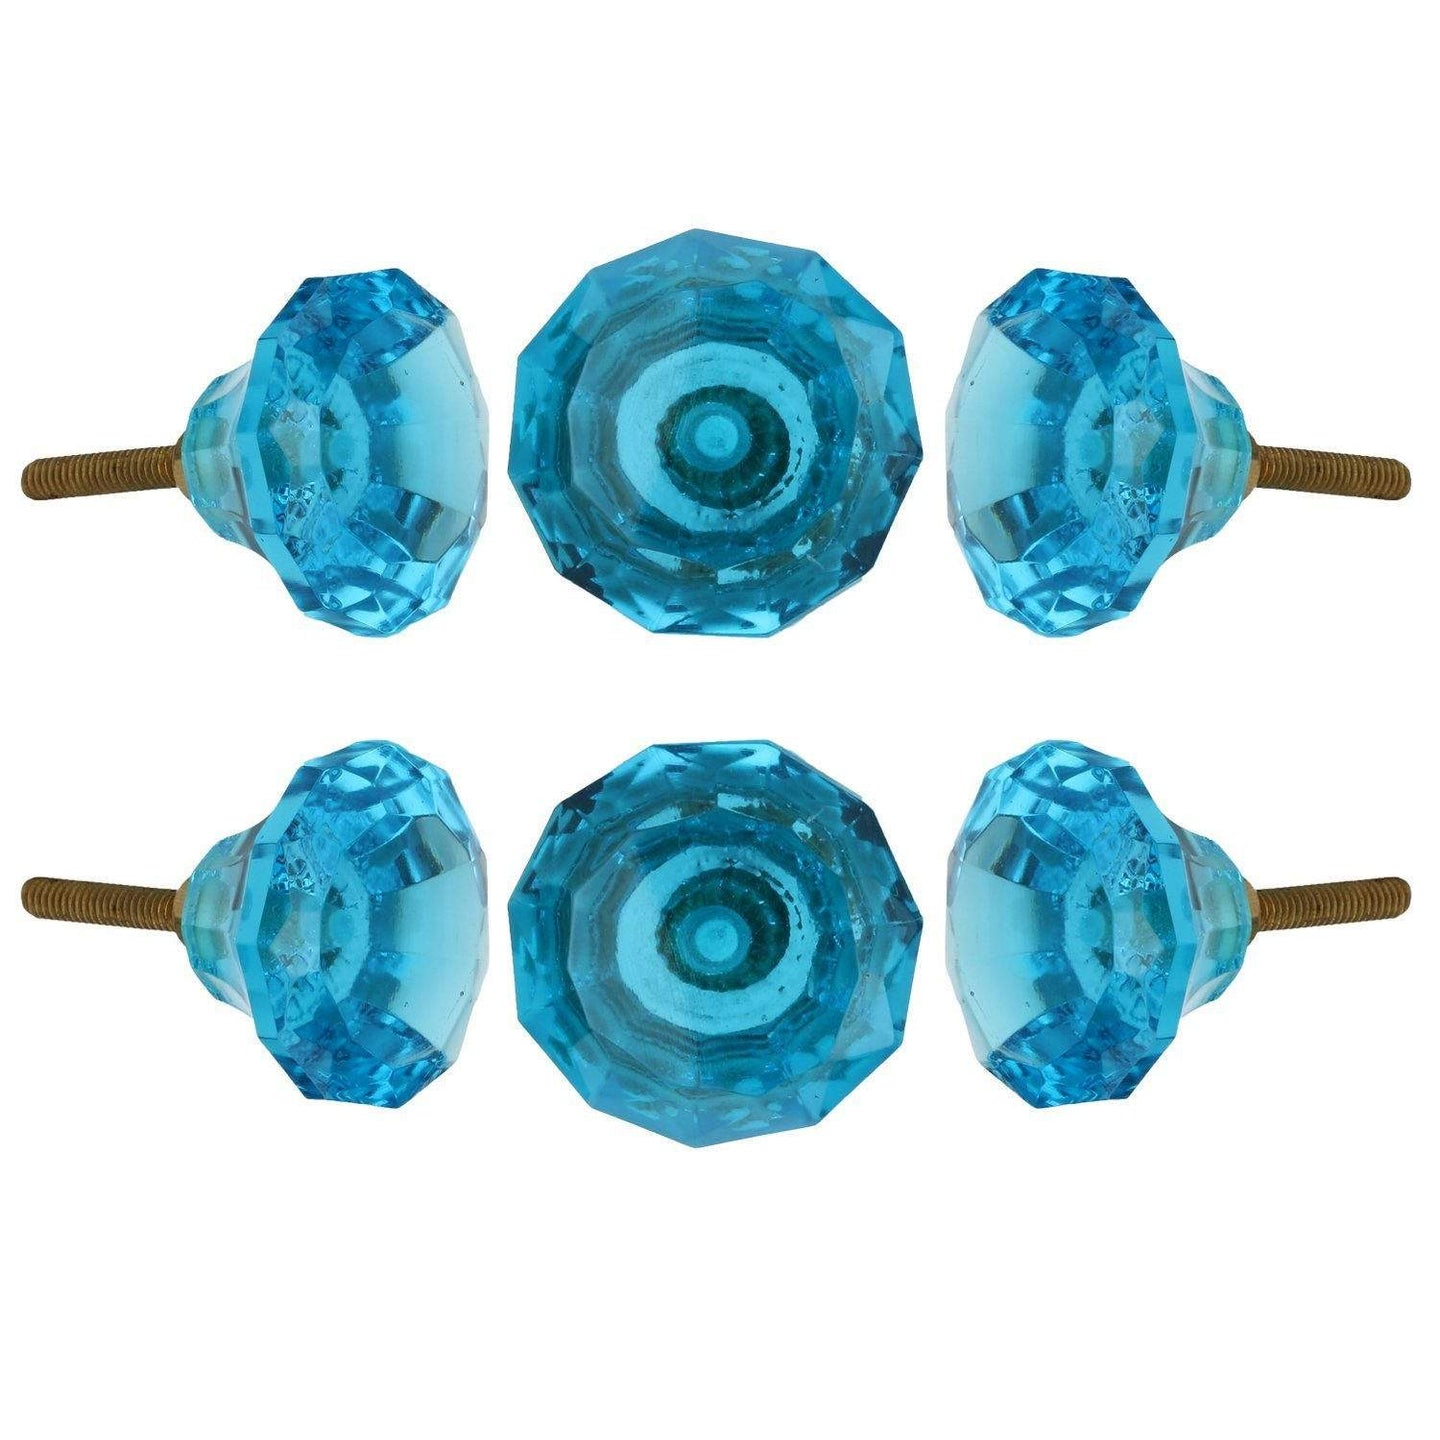 Turquoise Ocean Cut Glass Knob Set Of 6 - Perilla Home